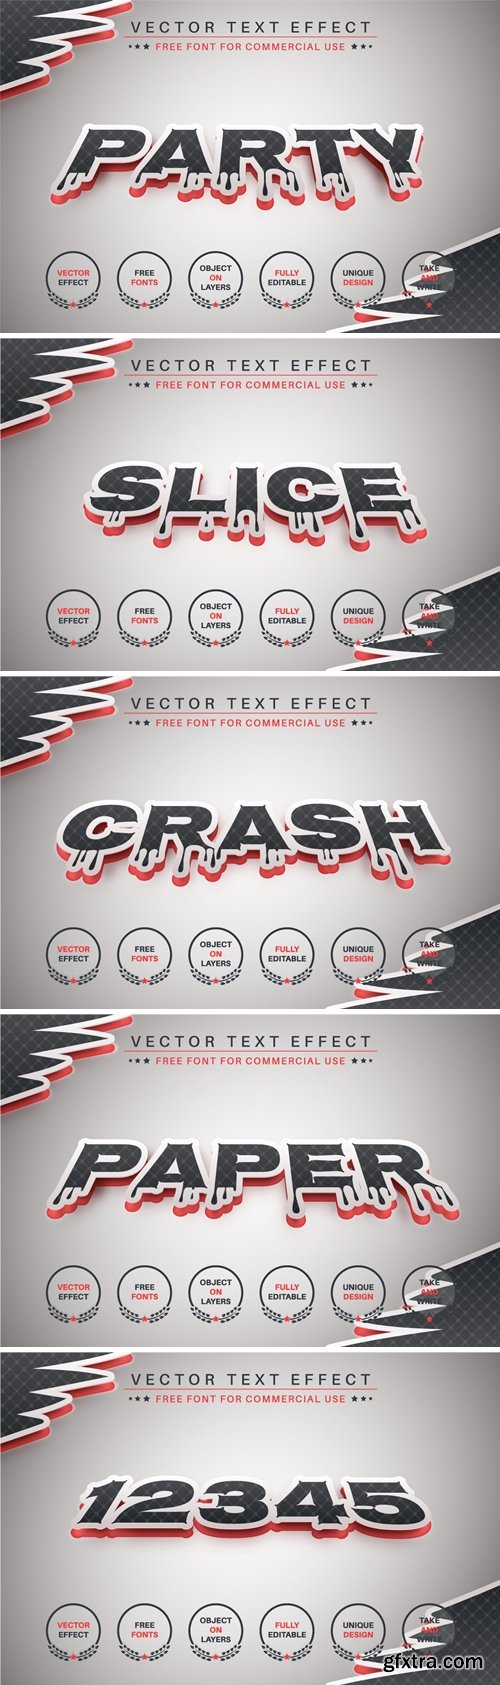 Dark Party - Editable Text Effect, Font Style